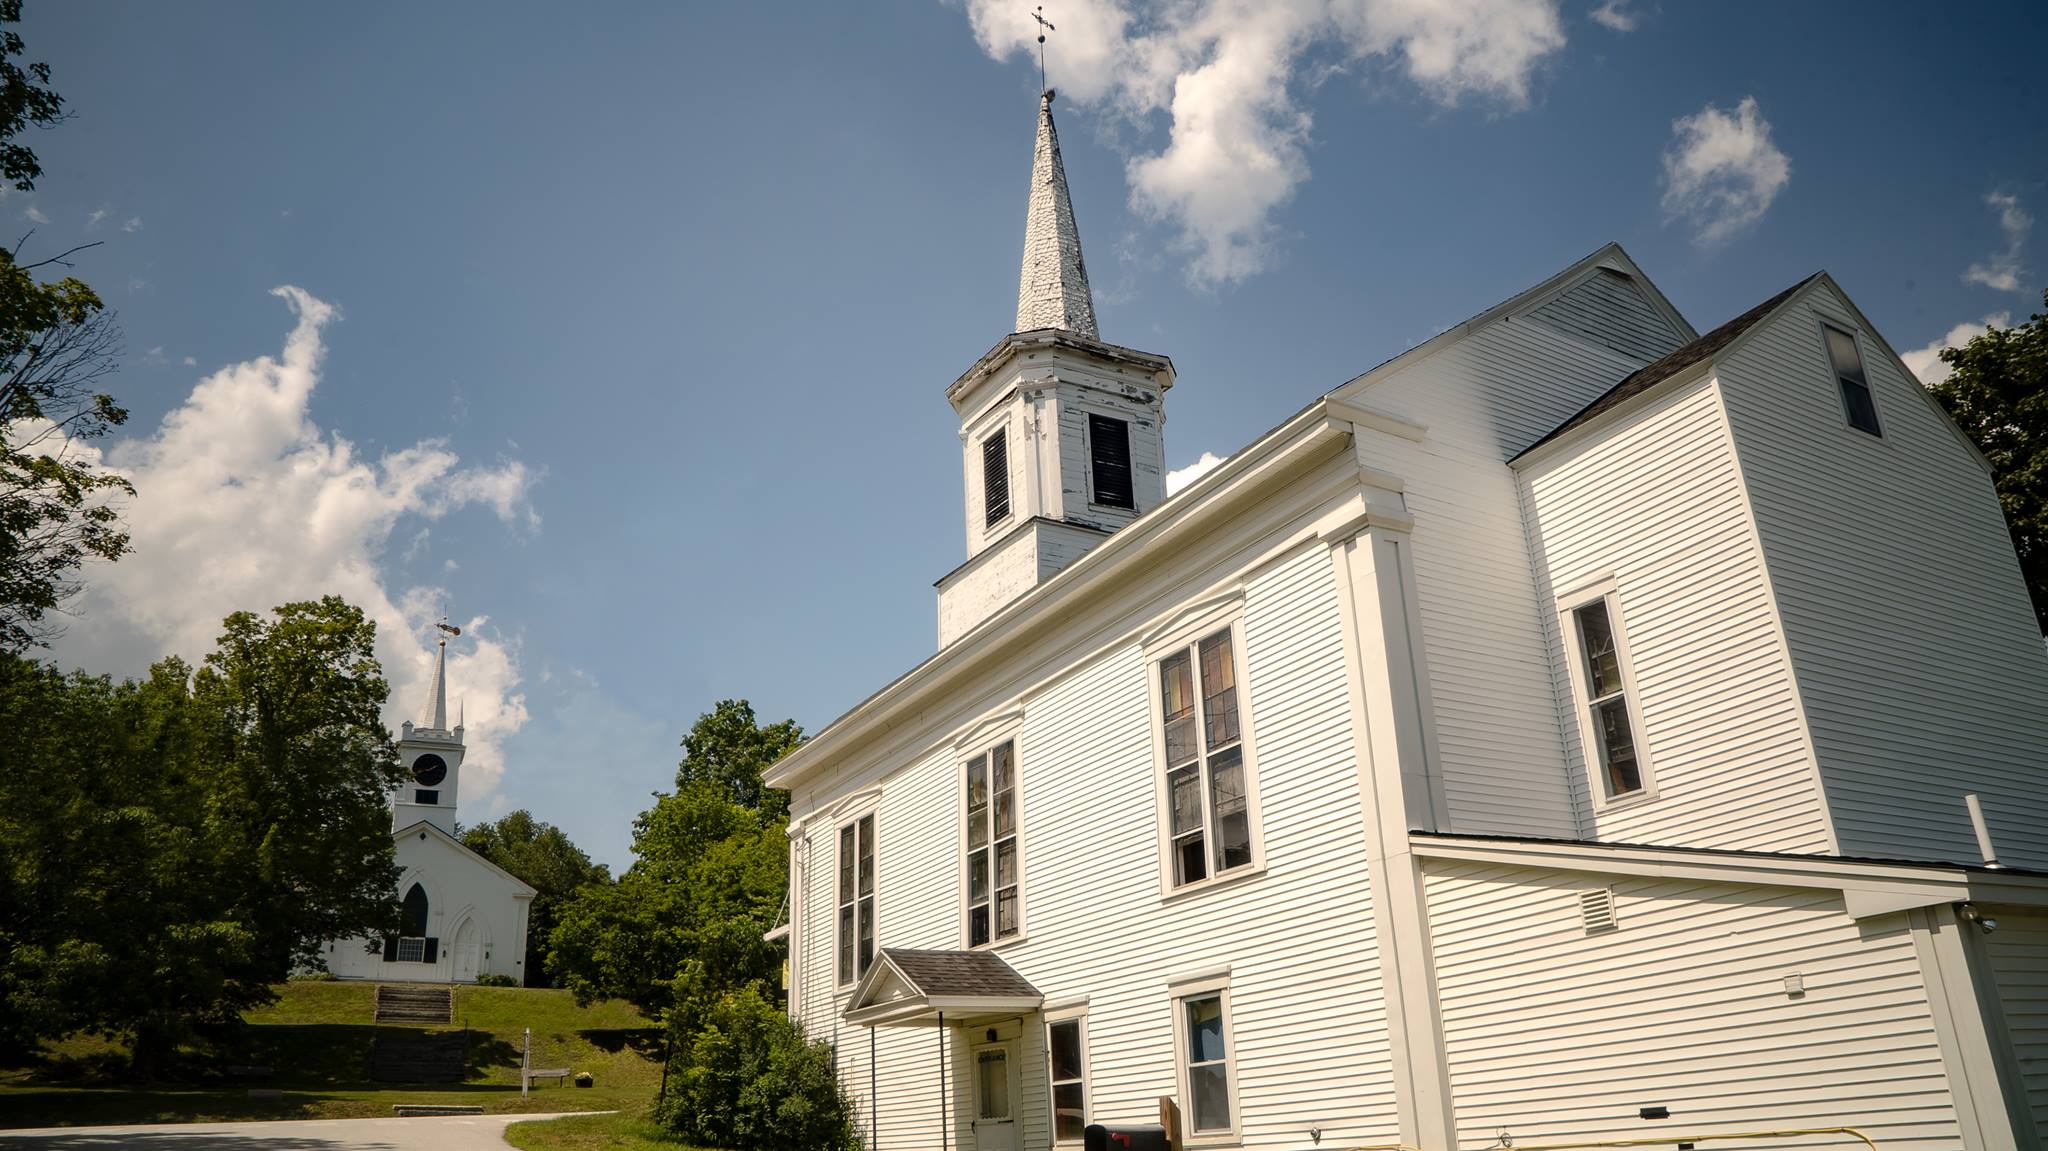 Winterport - Crooked Steeple Hall & The Union Meeting House